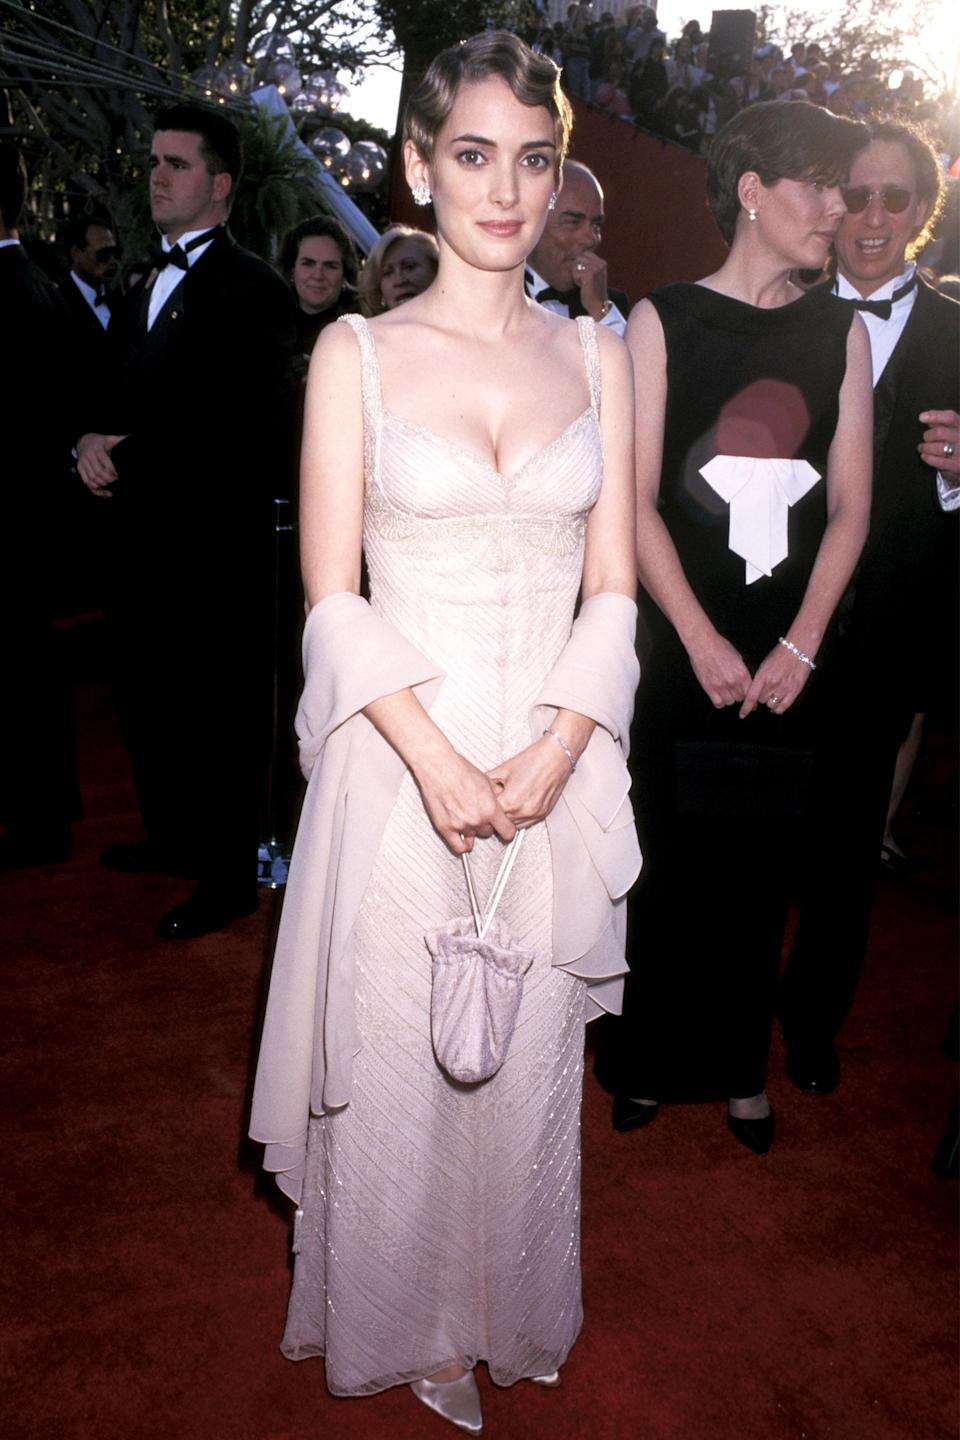 """<strong><h2>Winona Ryder, 1996</h2></strong><br>While we're used to seeing '90s-era Winona Ryder donning all-black ensembles, it was an unexpected surprise to see her donning this champagne-colored vintage gown.<br><br><em>Winona Ryder in a vintage champagne gown. </em><span class=""""copyright"""">Photo: Jim Smeal/WireImage/Getty Images. </span>"""